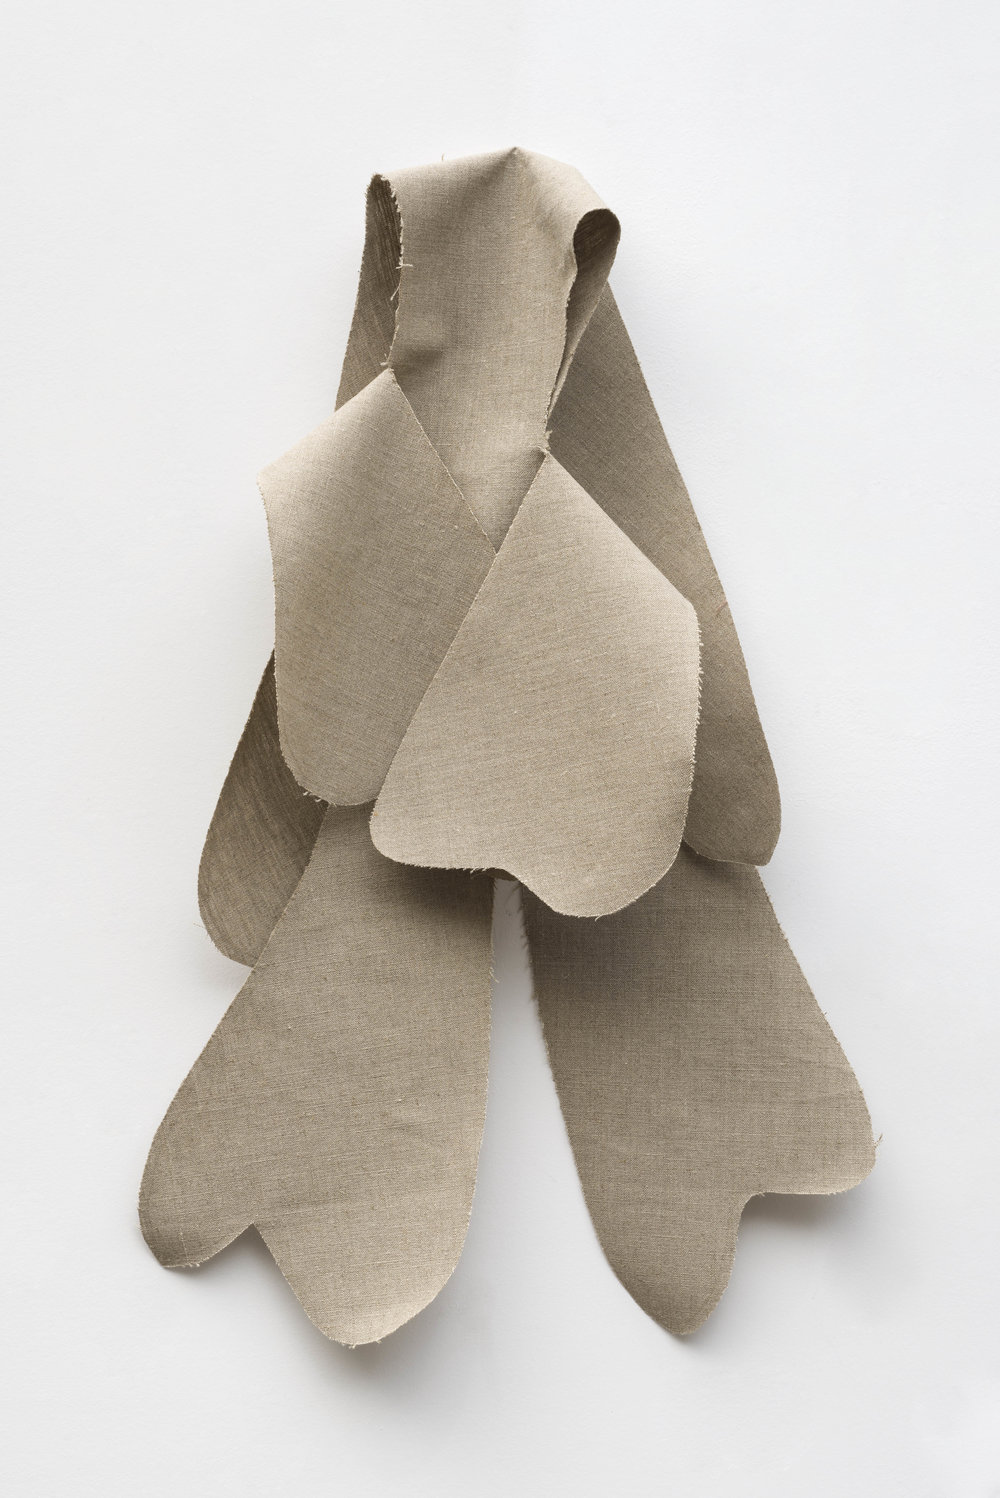 Nathan Mabry, Feels (Ghost I), 2017 belgian linen, brass 104 x 56 x 20,5 cm - 40 x 22 1/16 x 8 1/16 inches